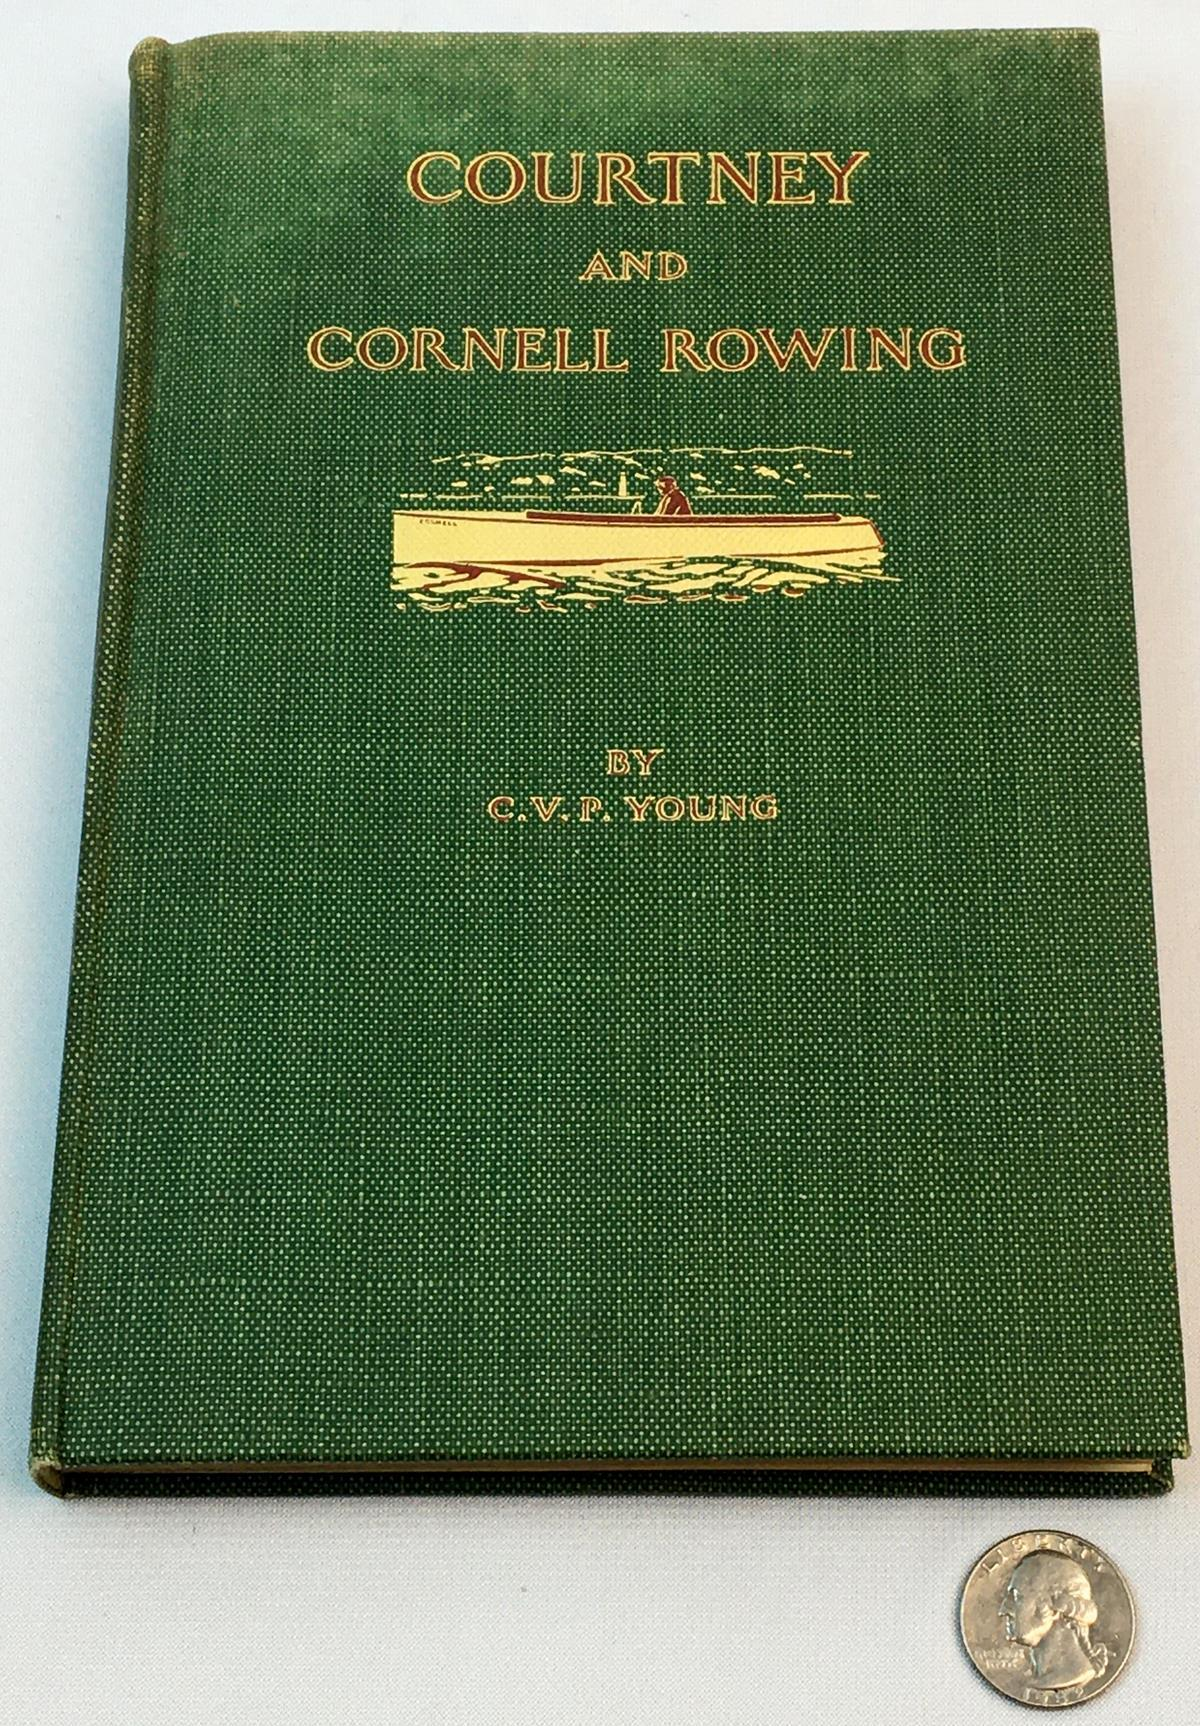 1923 Courtney and Cornell Rowing by Charles Van Patten Young FIRST EDITION